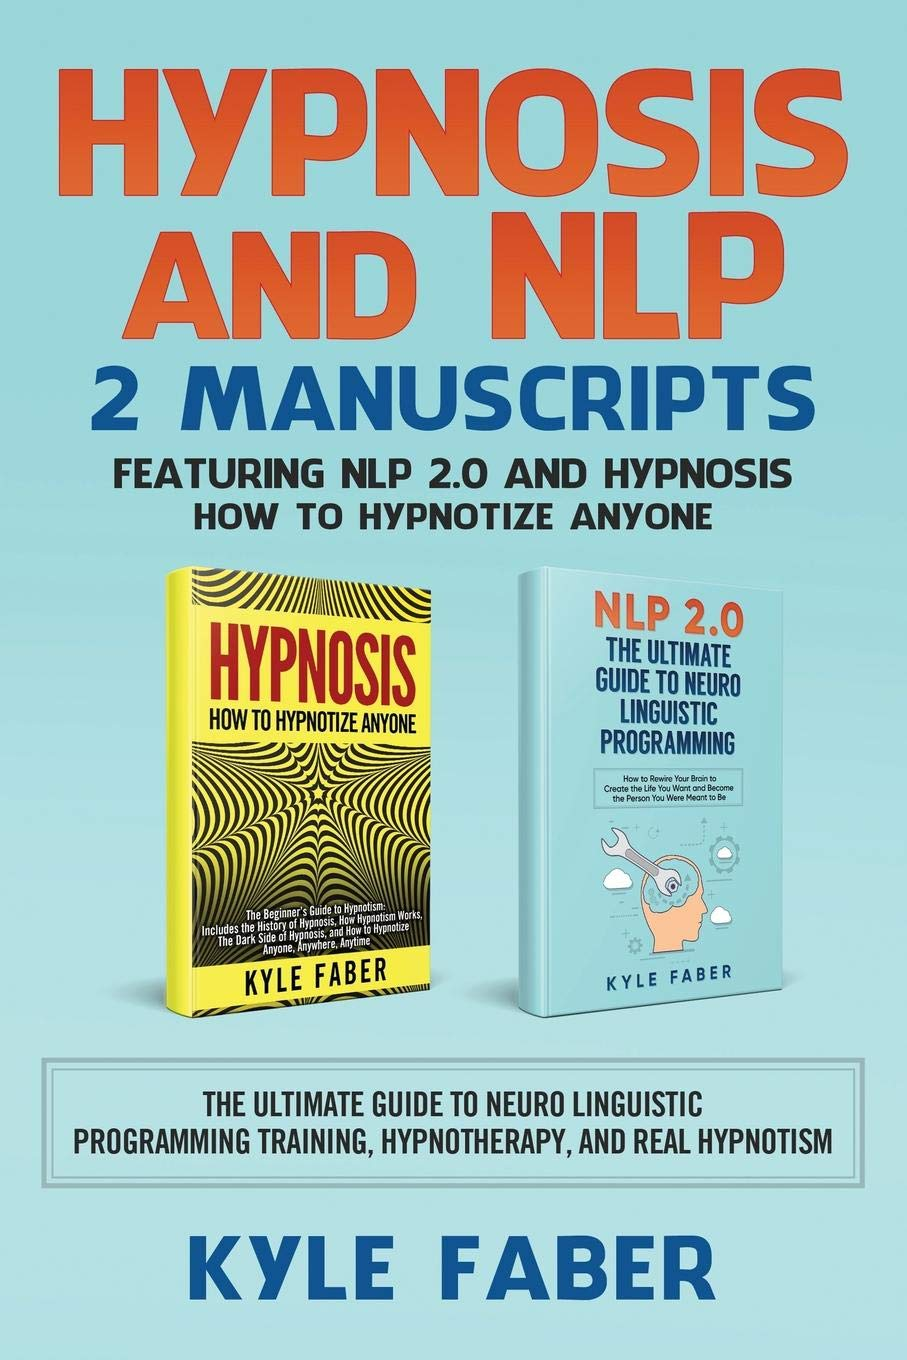 Amazon.com: Hypnosis and NLP: 2 Manuscripts - Featuring NLP 2.0 and  Hypnosis - How to Hypnotize Anyone: The Ultimate Guide to Neuro Linguistic  Programming ...